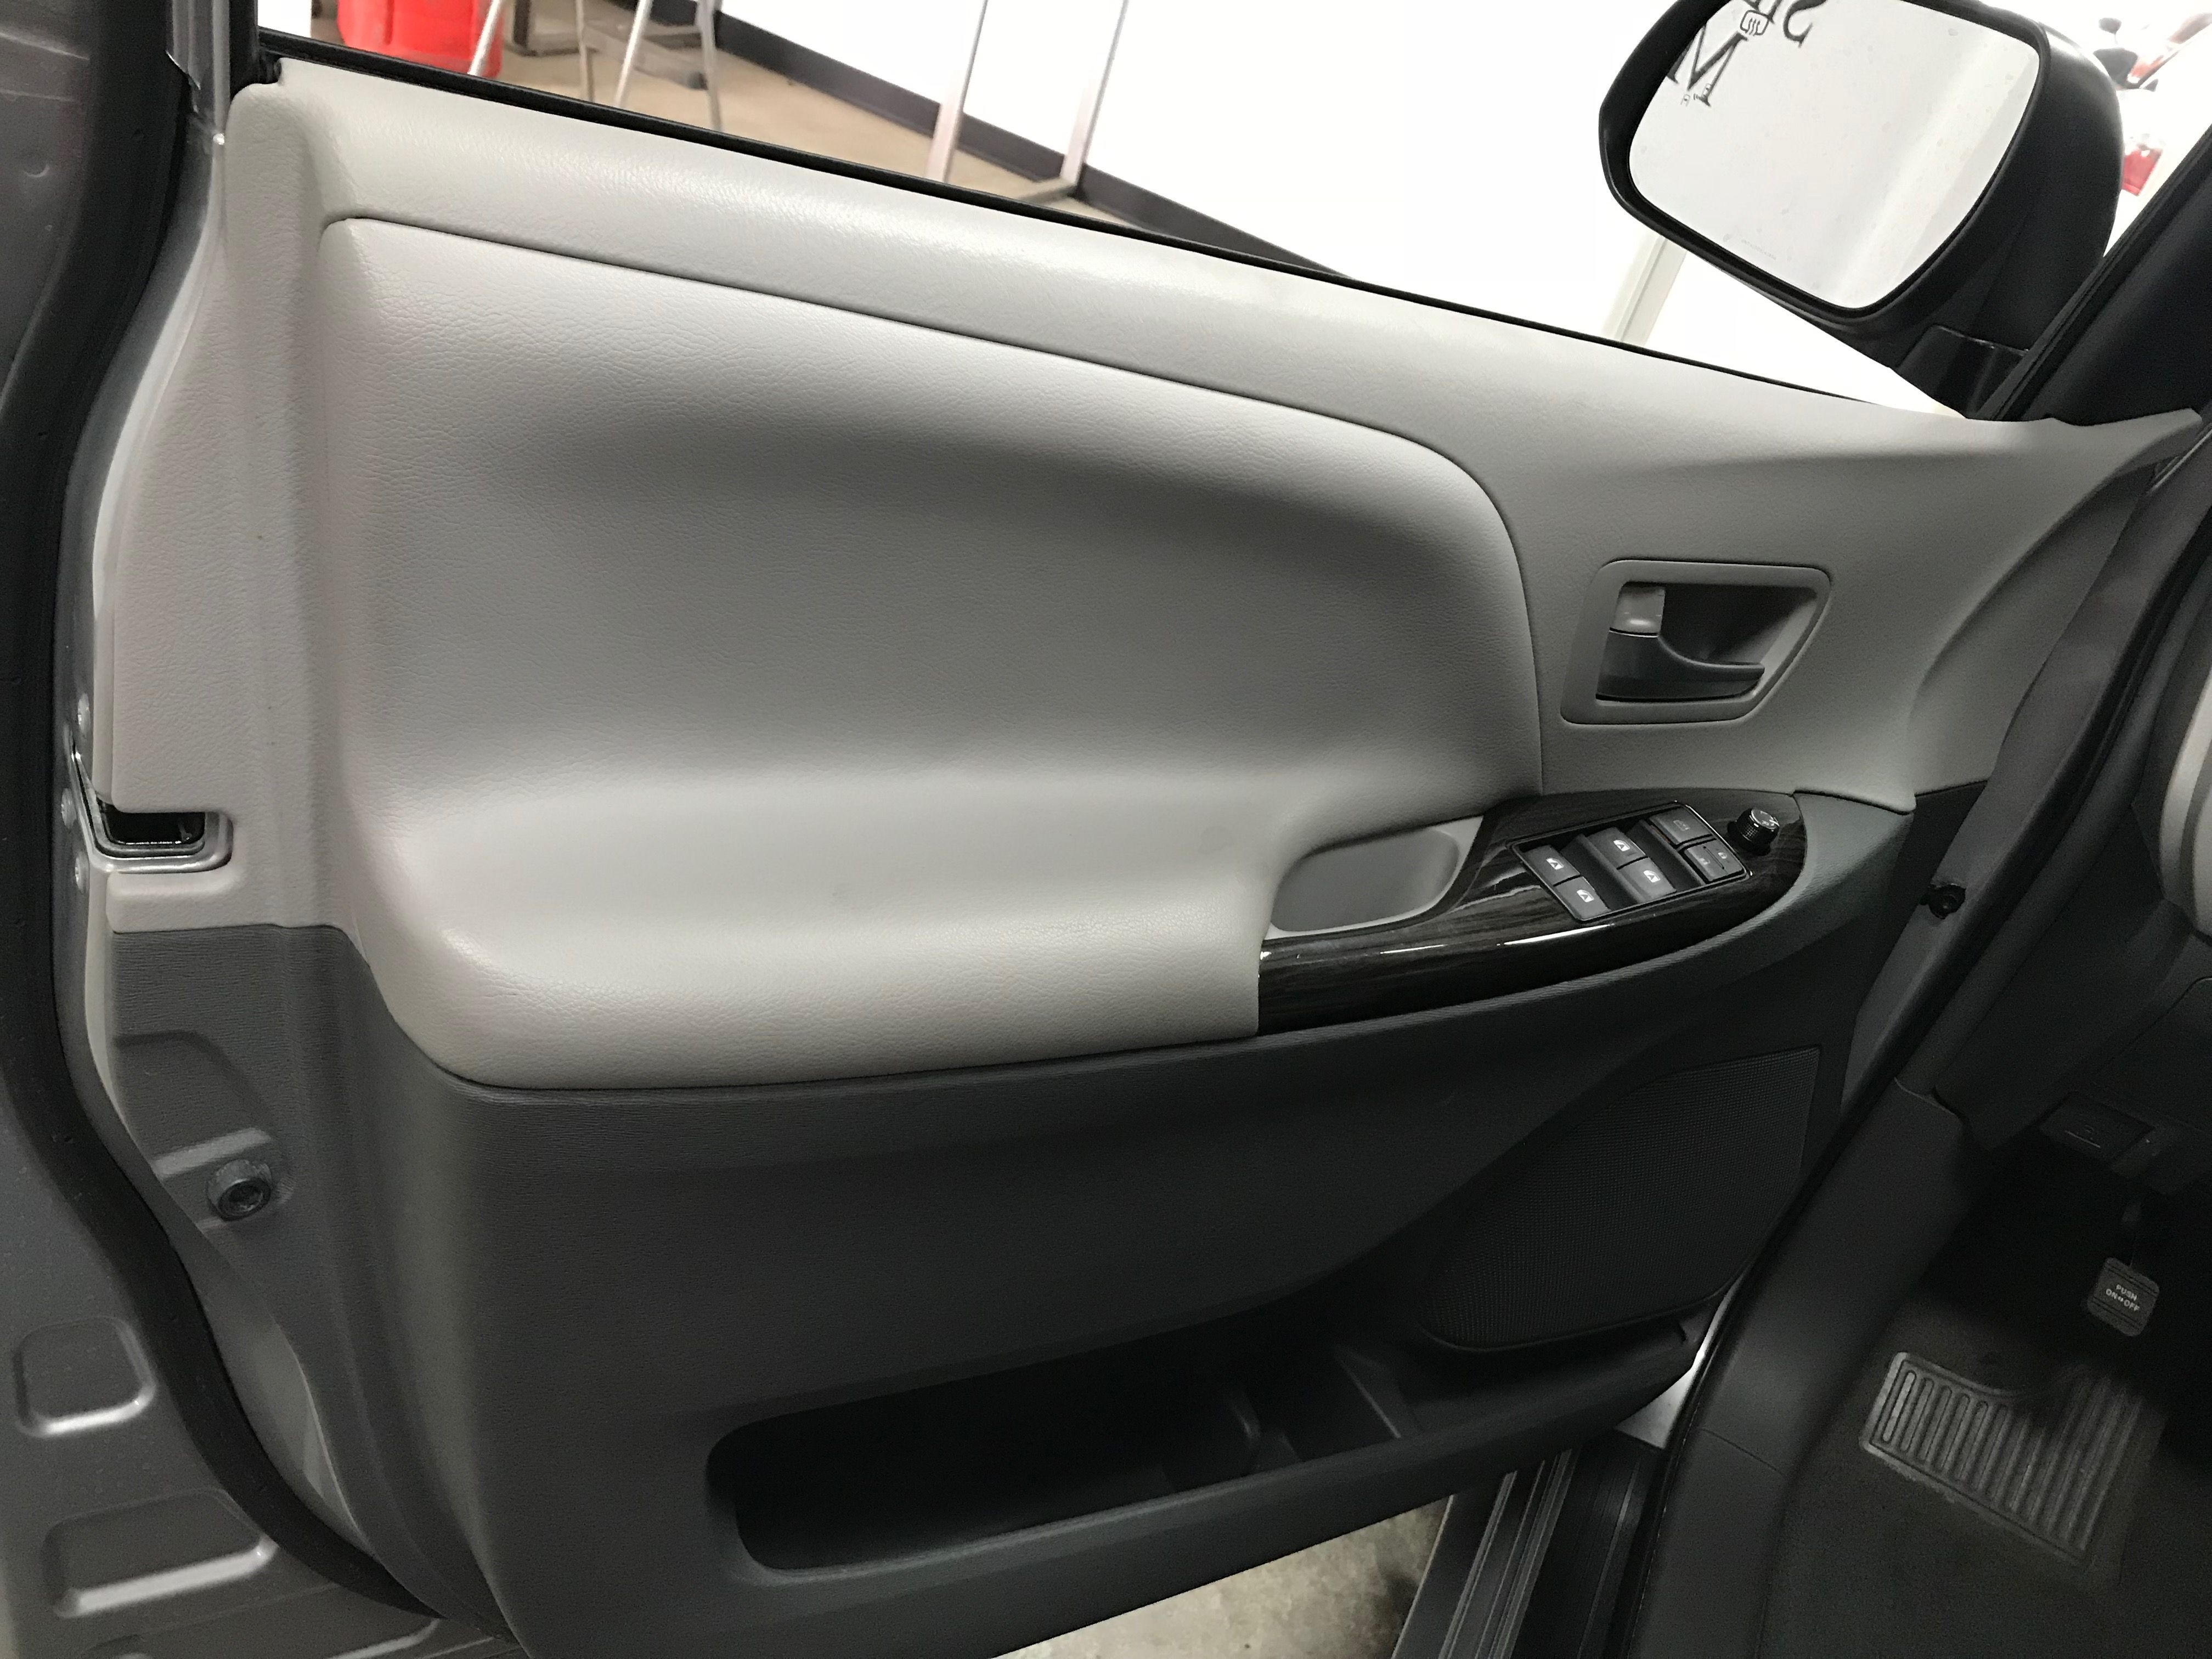 Full carproof fully inspected no claim no story call